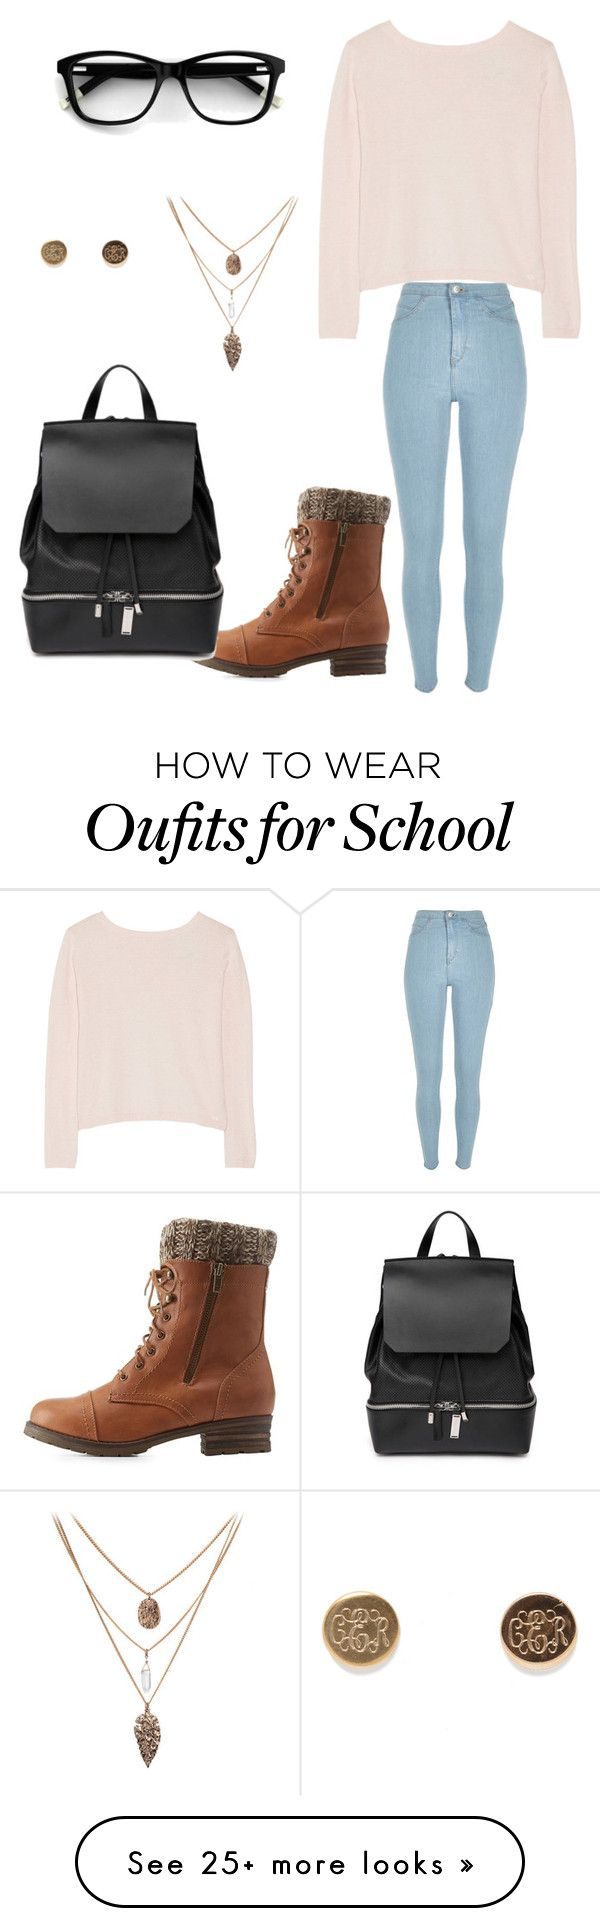 """Casual school day"" by lanasabo-i on Polyvore featuring Banjo & Matilda, River Island, Charlotte Russe and COSTUME NATIONAL"